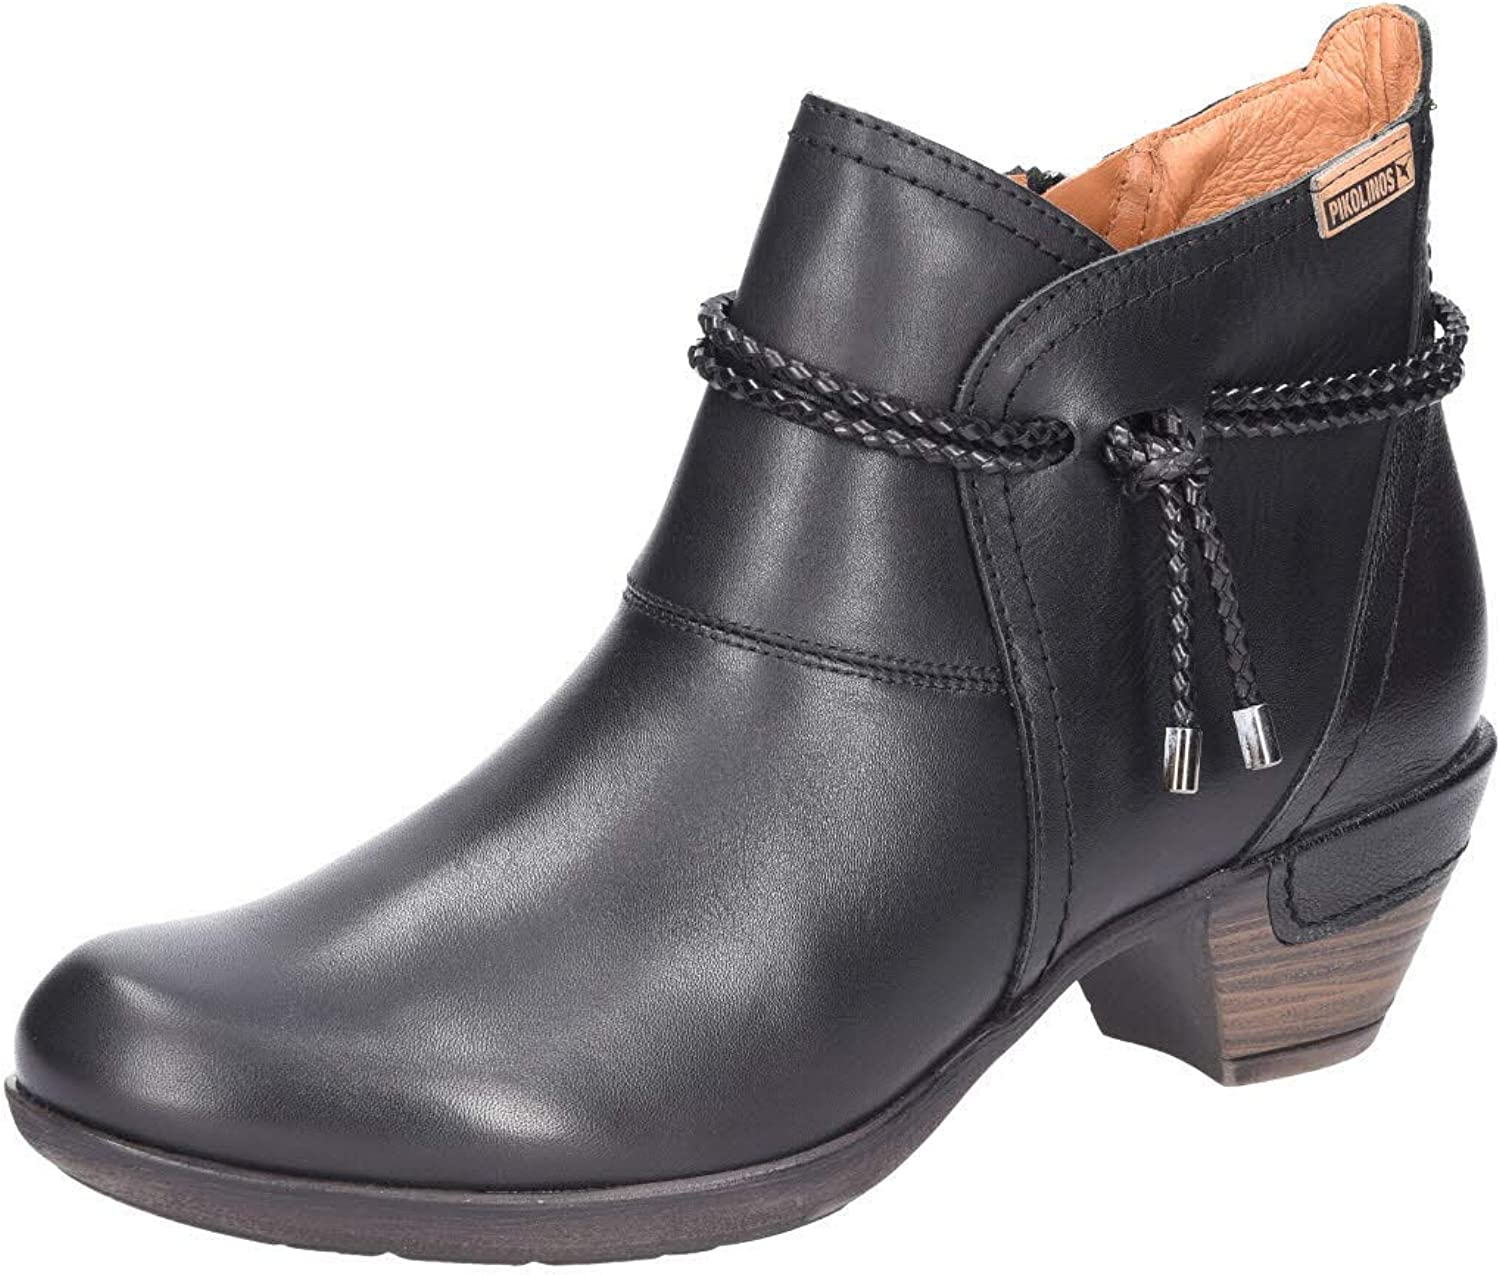 PIKOLINOS Women's free Rotterdam 902-8775 Boot Max 83% OFF Detailing Side with